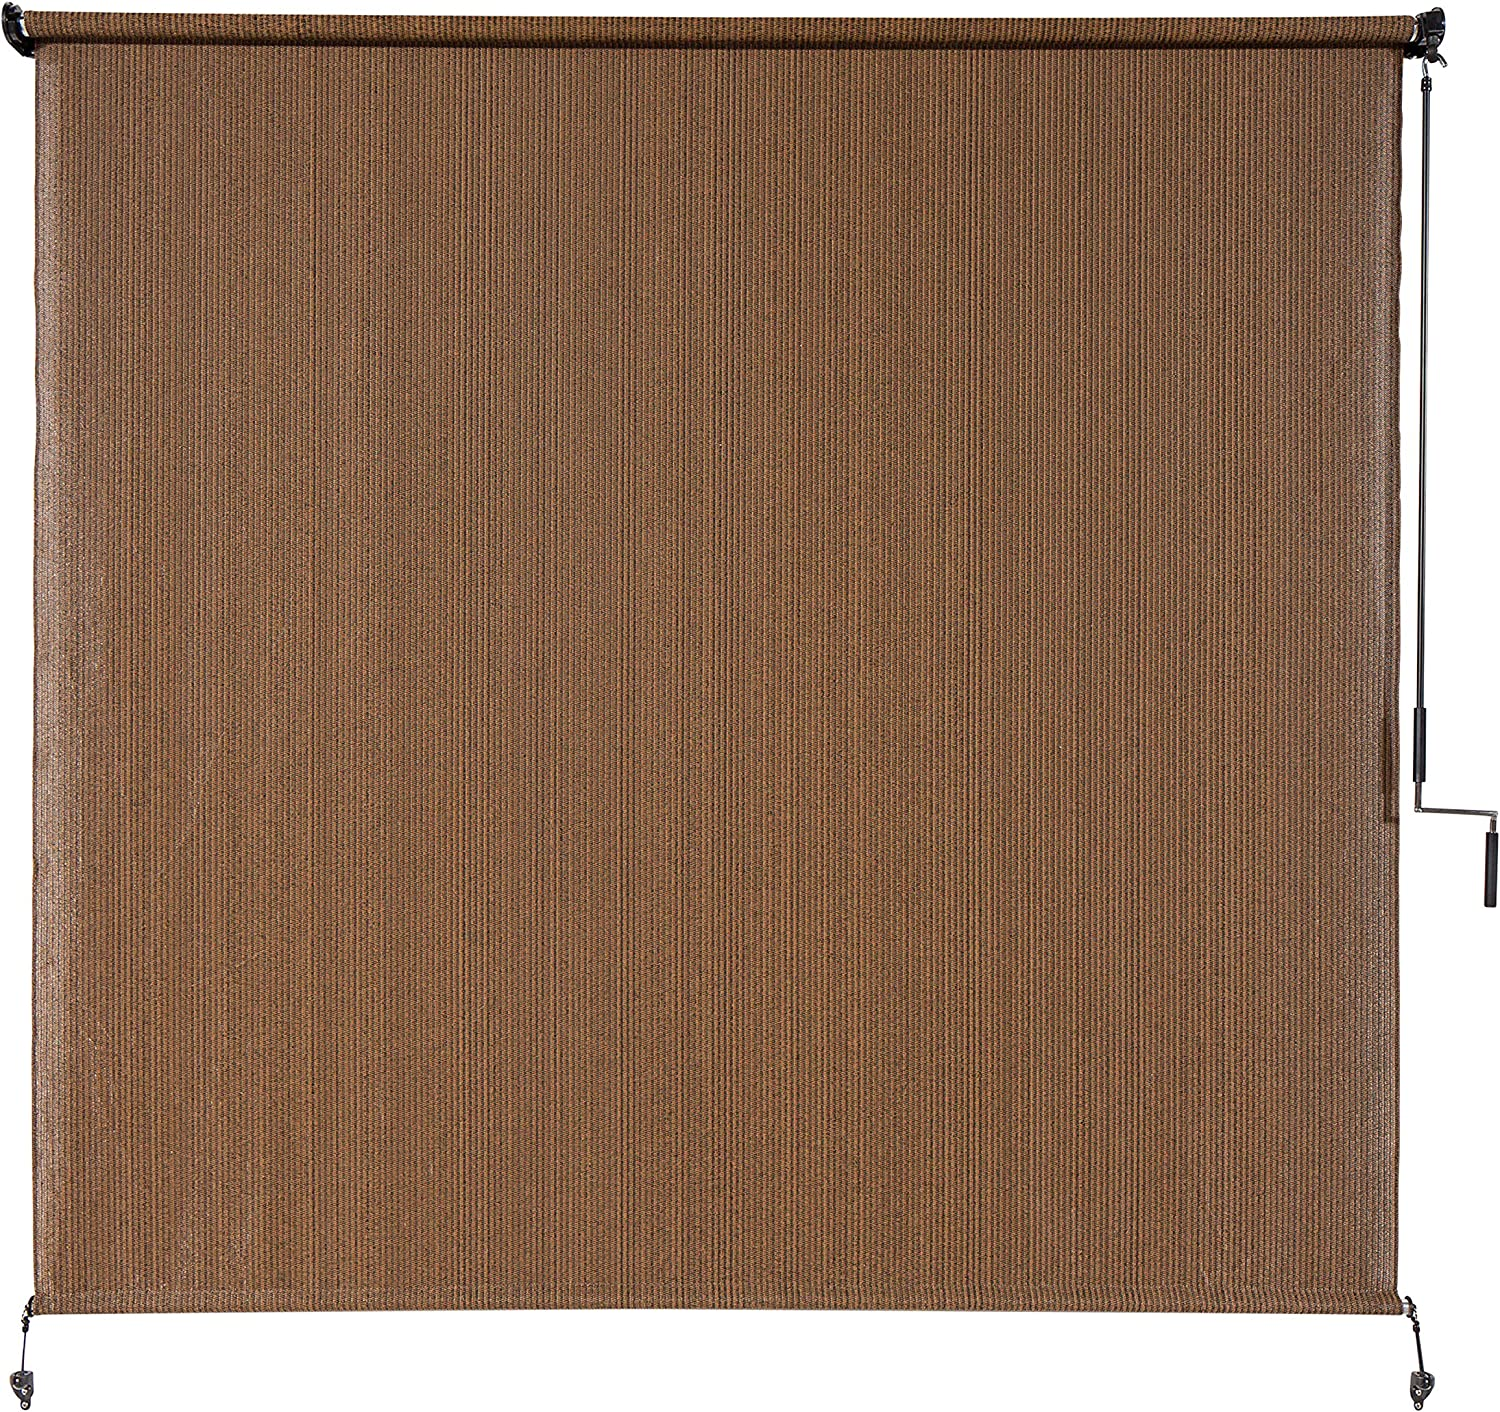 Coolaroo Exterior Roller Shade, Cordless Roller Shade with 90% UV Protection, No Valance, (4' W X 6' L), Mocha